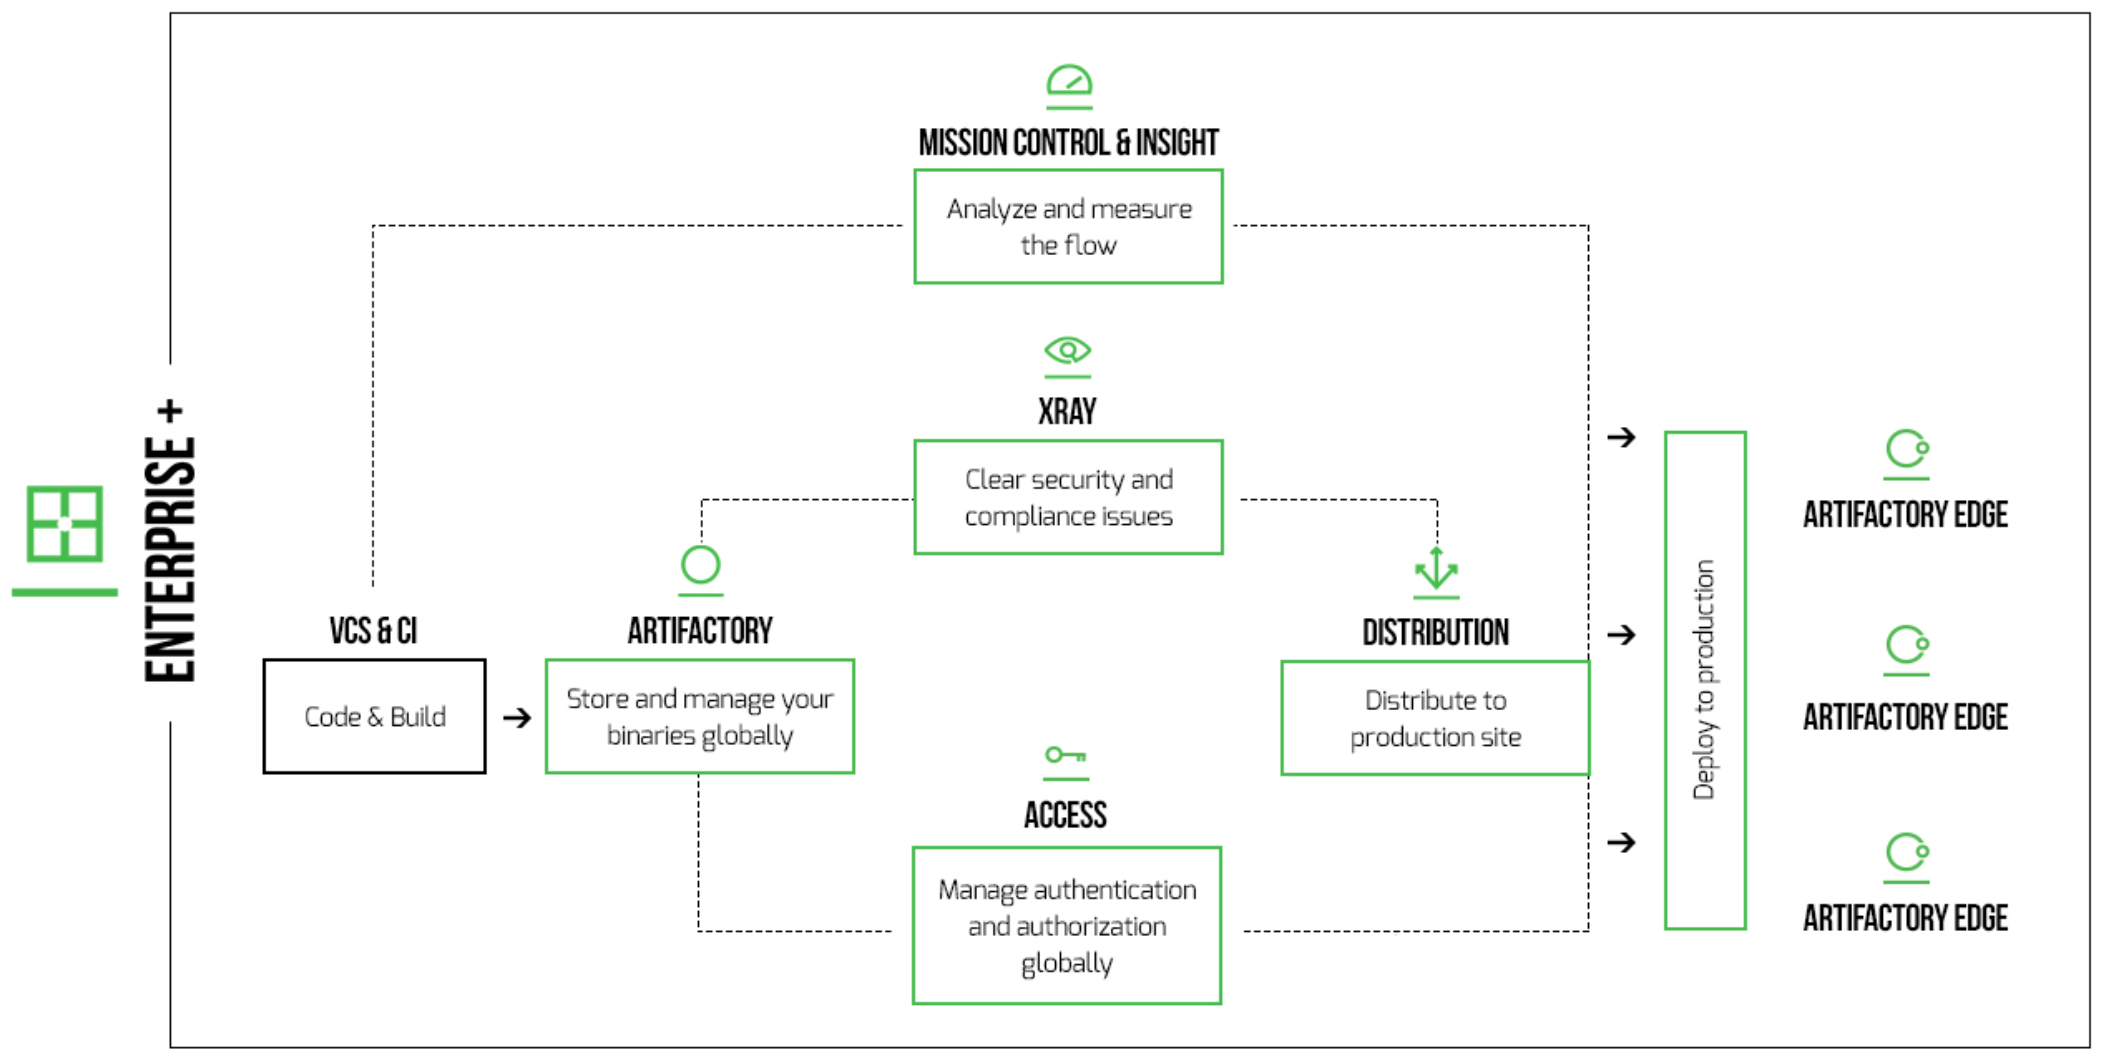 JFrog product flow